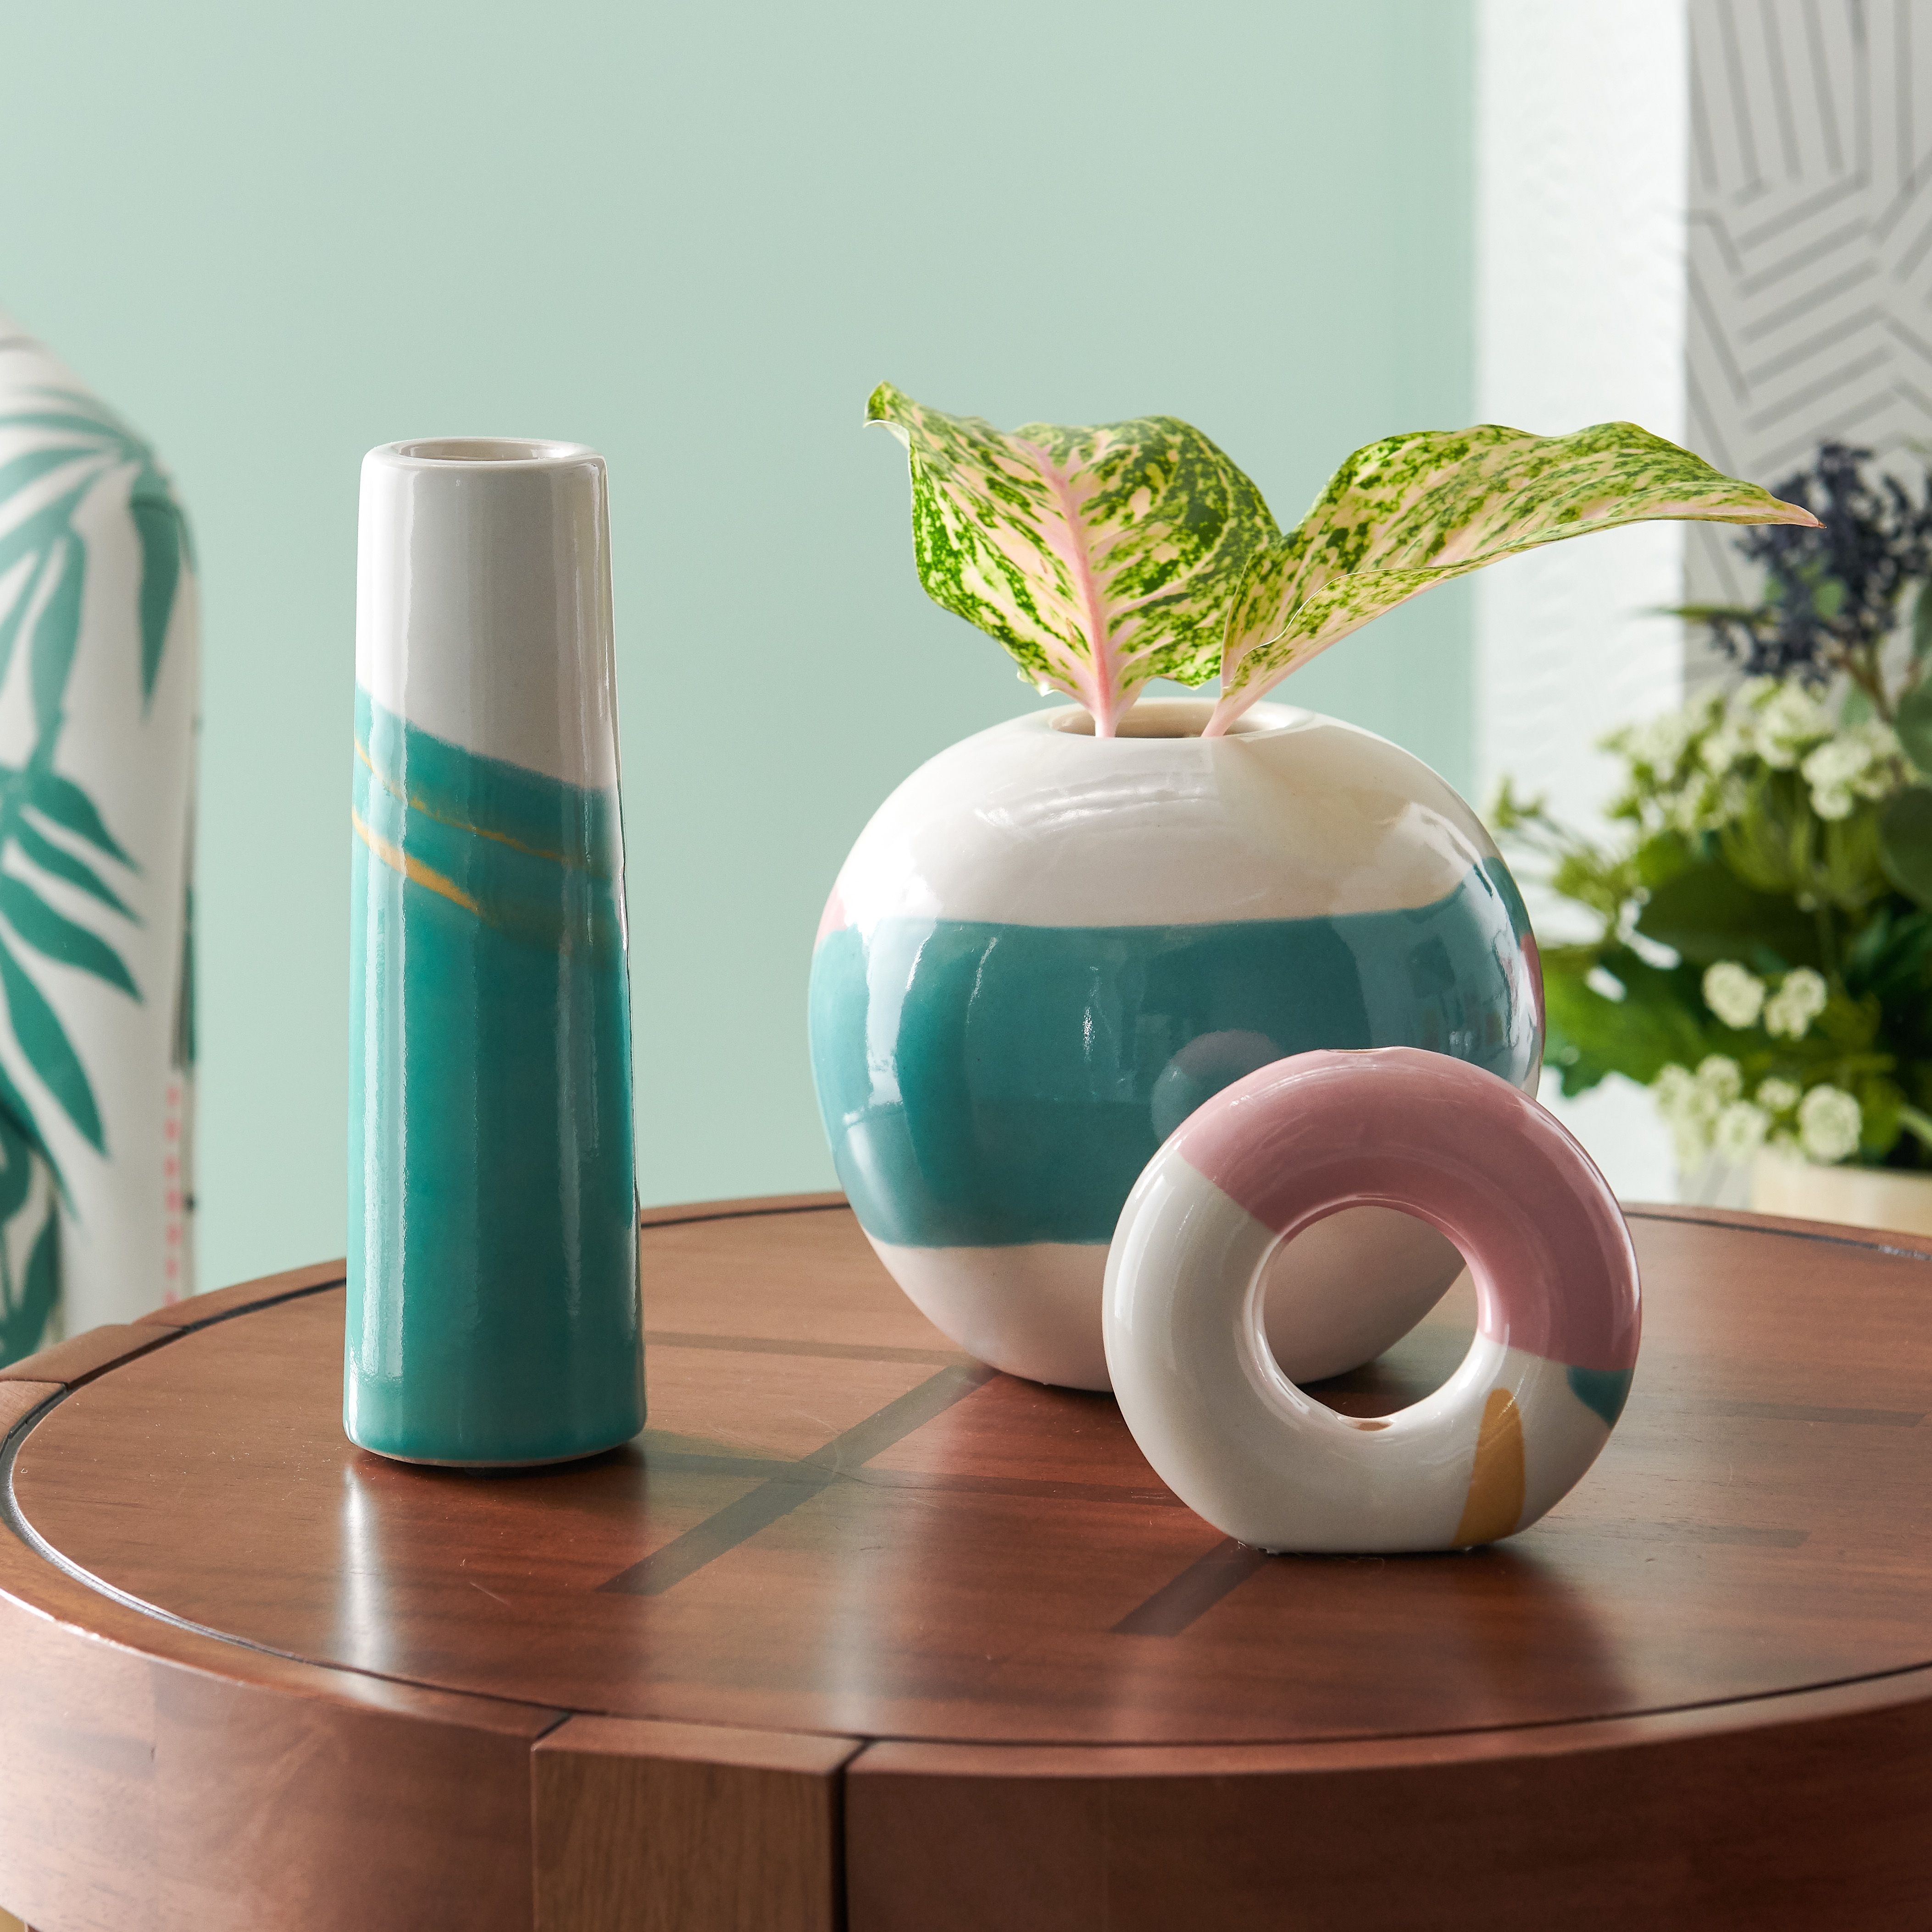 Abstract Vase Set Drew Barrymore Flower Home walmart.com $39.00 SHOP NOW For the artsy mom, these abstract vases (from Drew Barrymore's home collection, btw) will instantly elevate the look of any room. Even, yes, your childhood bedroom...